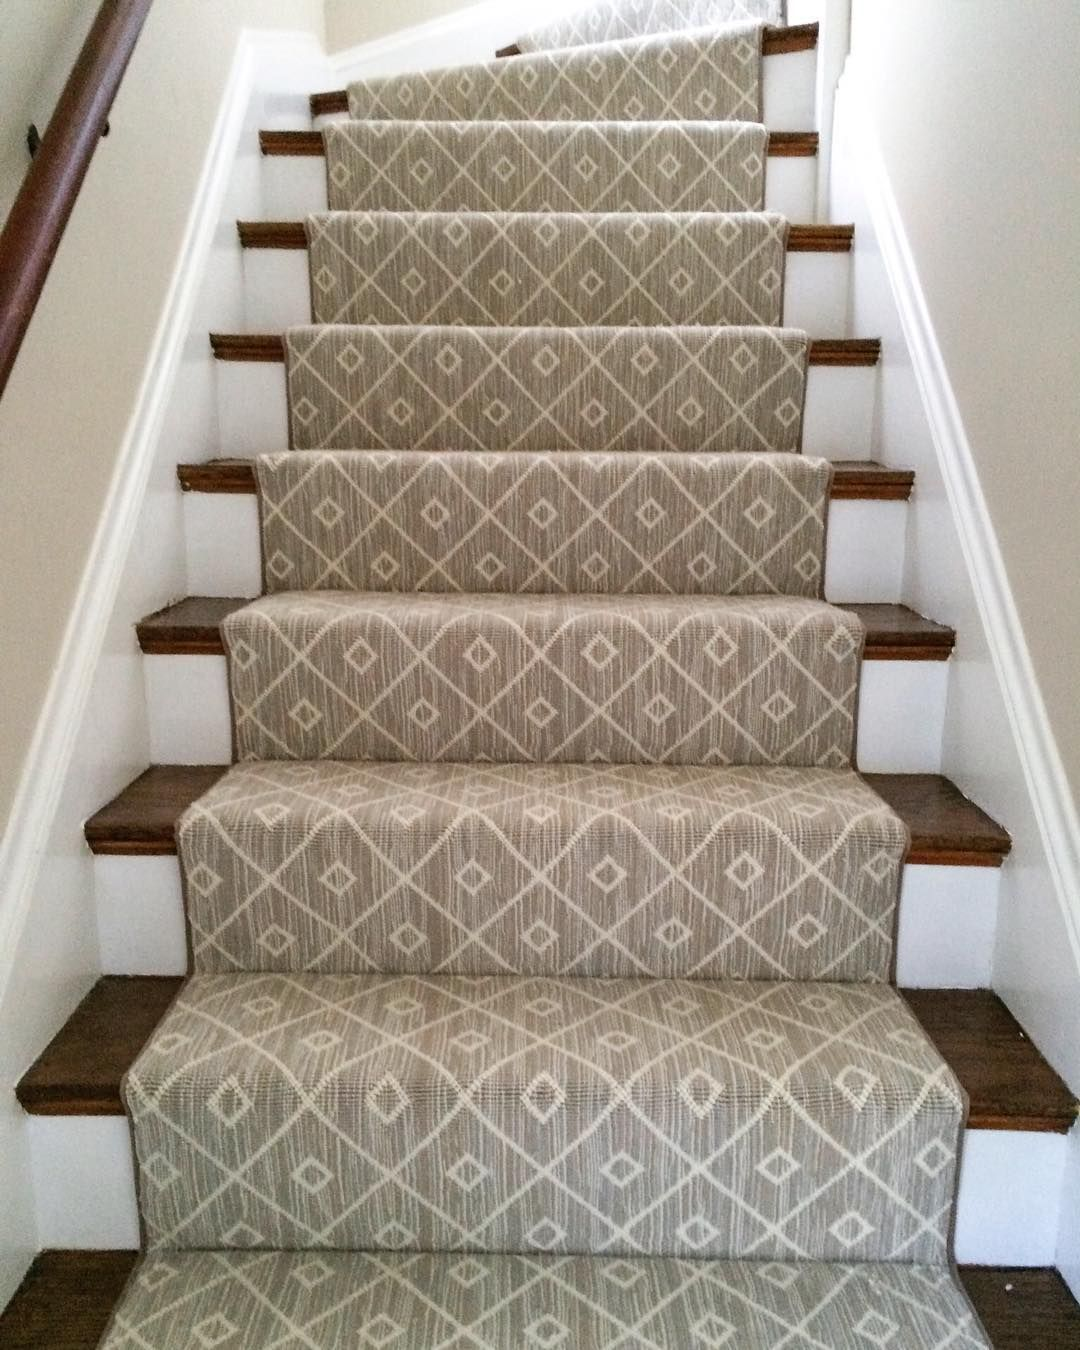 Mia A Woven 100 Wool Carpet Makes For A Beautiful Stair Runner Installation By Thecarpetworkroom Carp Stair Runner Carpet Stair Rug Runner Carpet Stairs